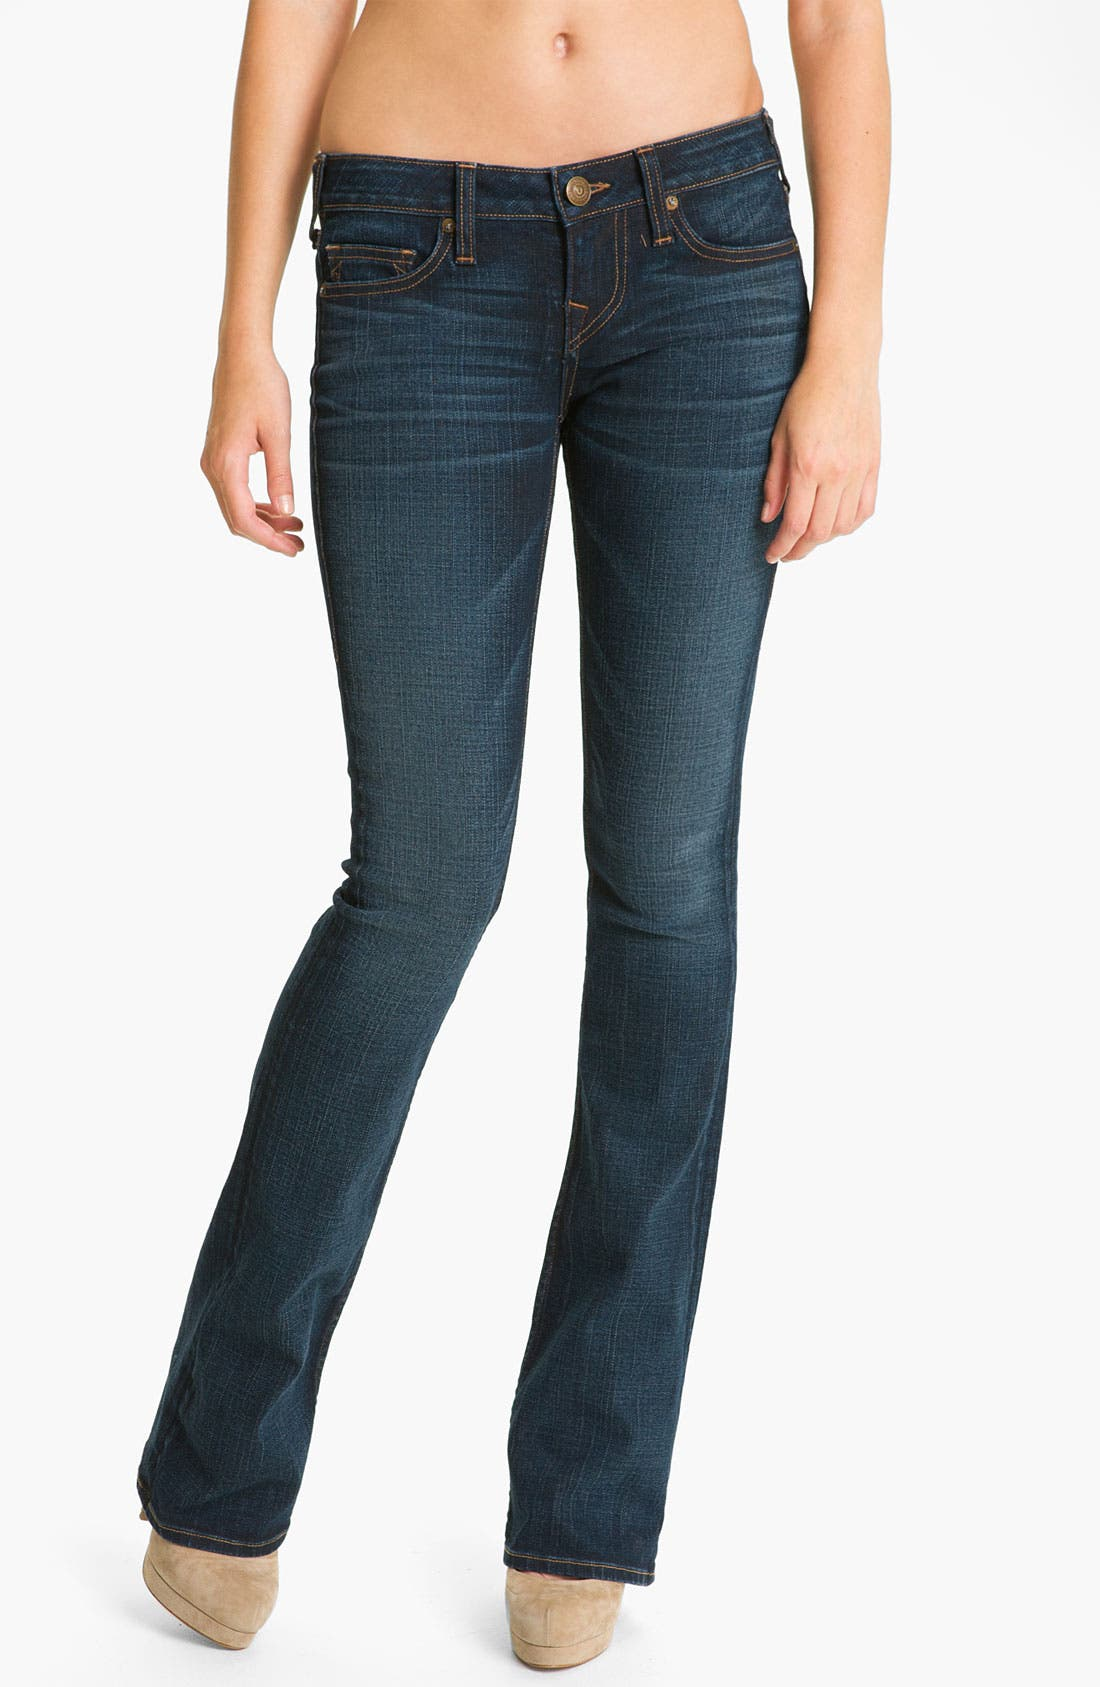 Main Image - True Religion Brand Jeans 'Bobby' Boot Cut Jeans (Tim Luckdraw)